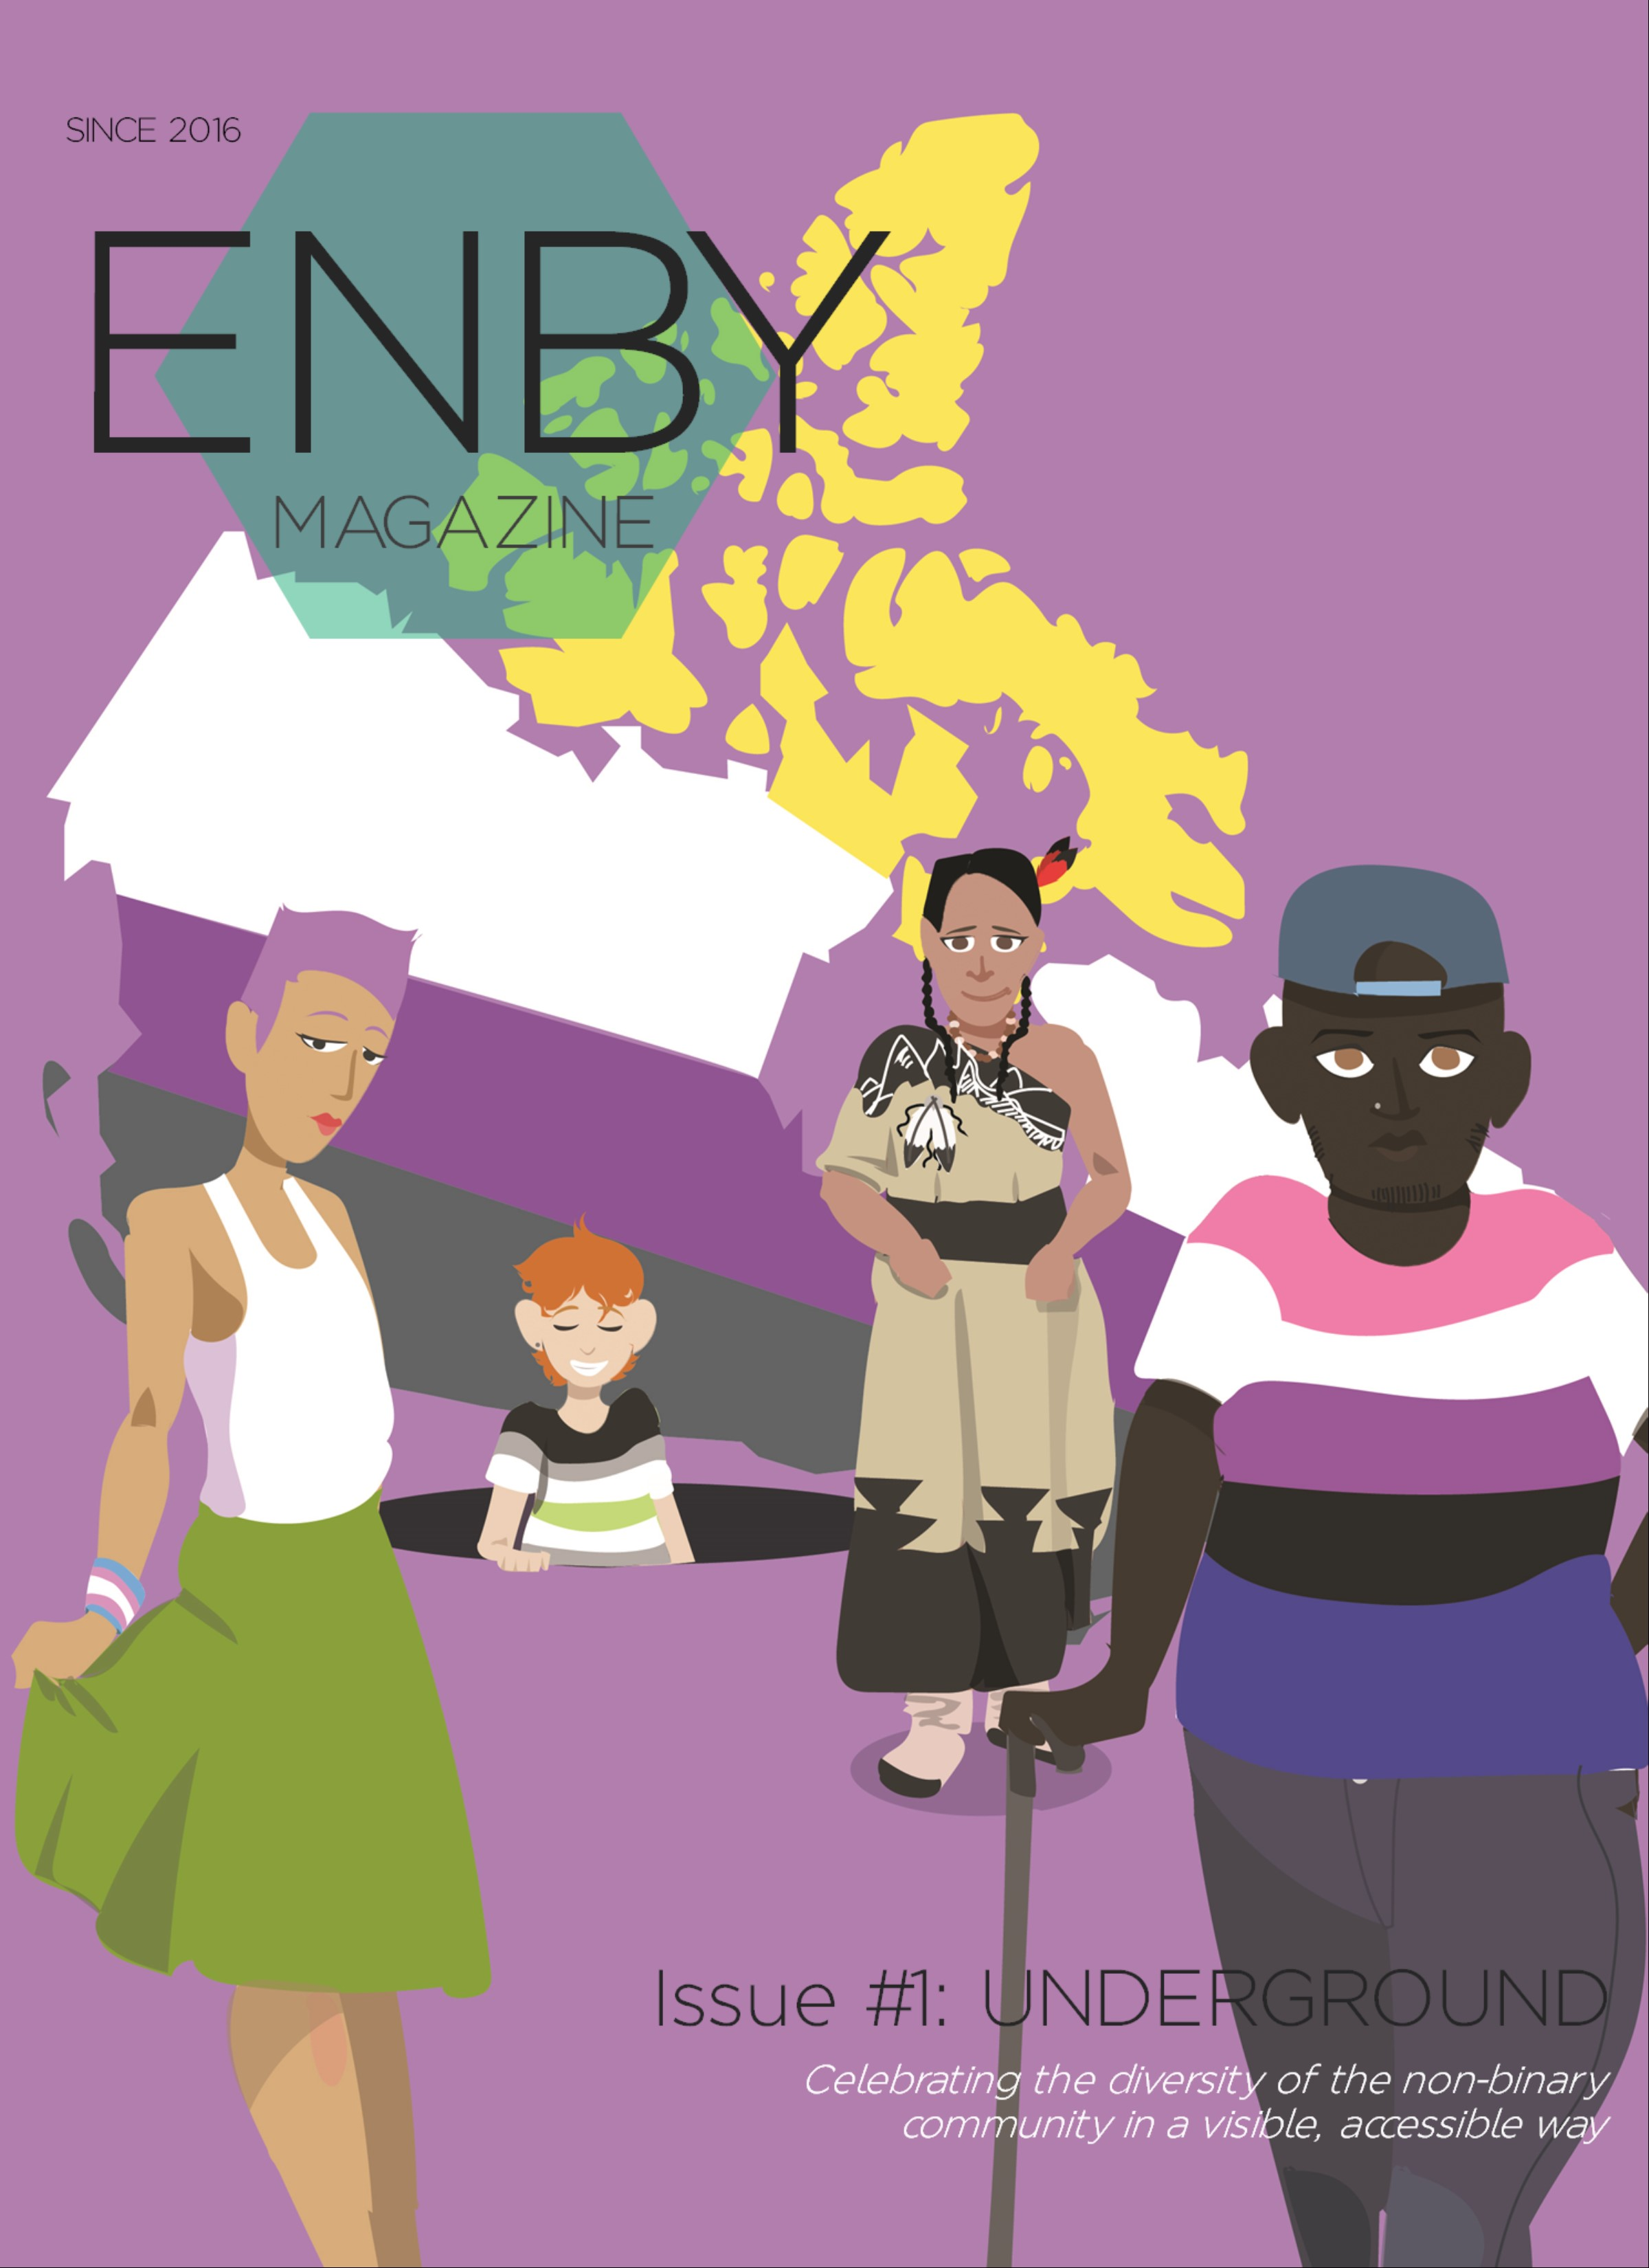 Issue #1: UNDERGROUND - This issue that started it all. Fun fact: ENBY Magazine actually began as a Canada-only publication before expanding to international submissions, while still mainly distributed across North America. UNDERGROUND was forged at a time where non-binary representation was sparse, particularly by those living in Canada. It showcased work about Two-Spirit identity, geography and its impact on life experiences, visual art, and more. Cover art by a longtime friend of the mag, Jeffery Kingsley.